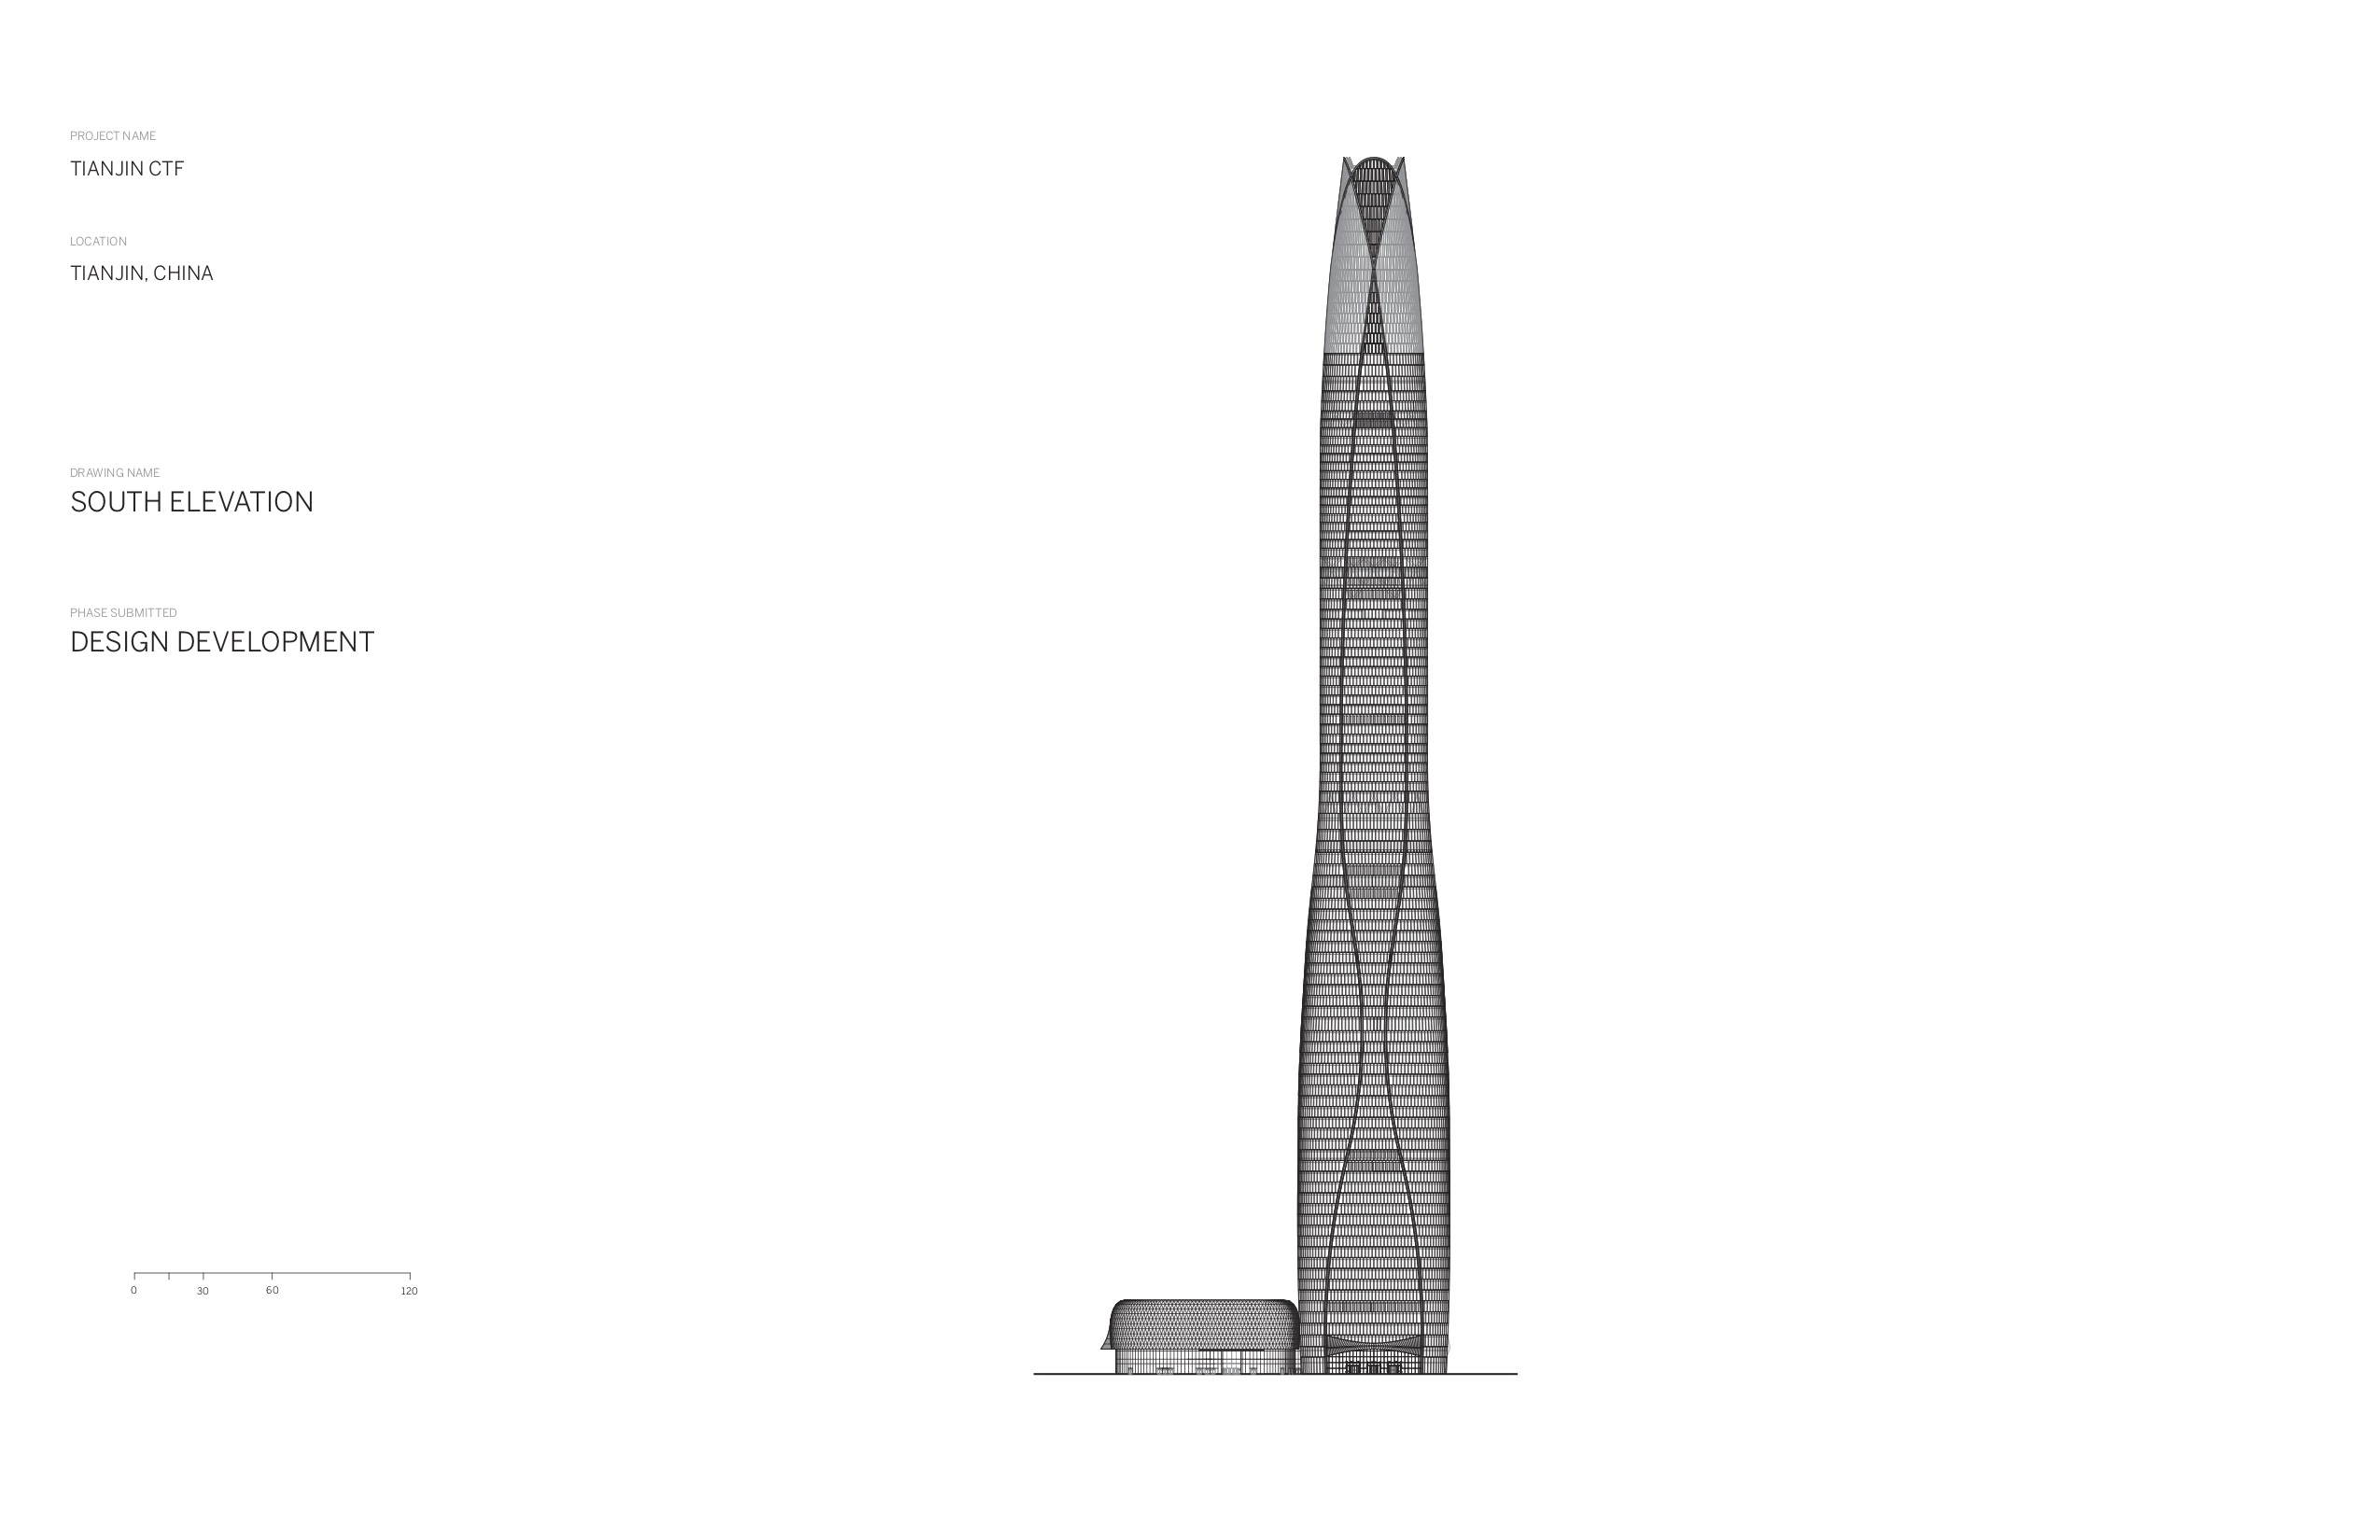 SOM's Tianjin CTF Finance Centre meets the breeze with a